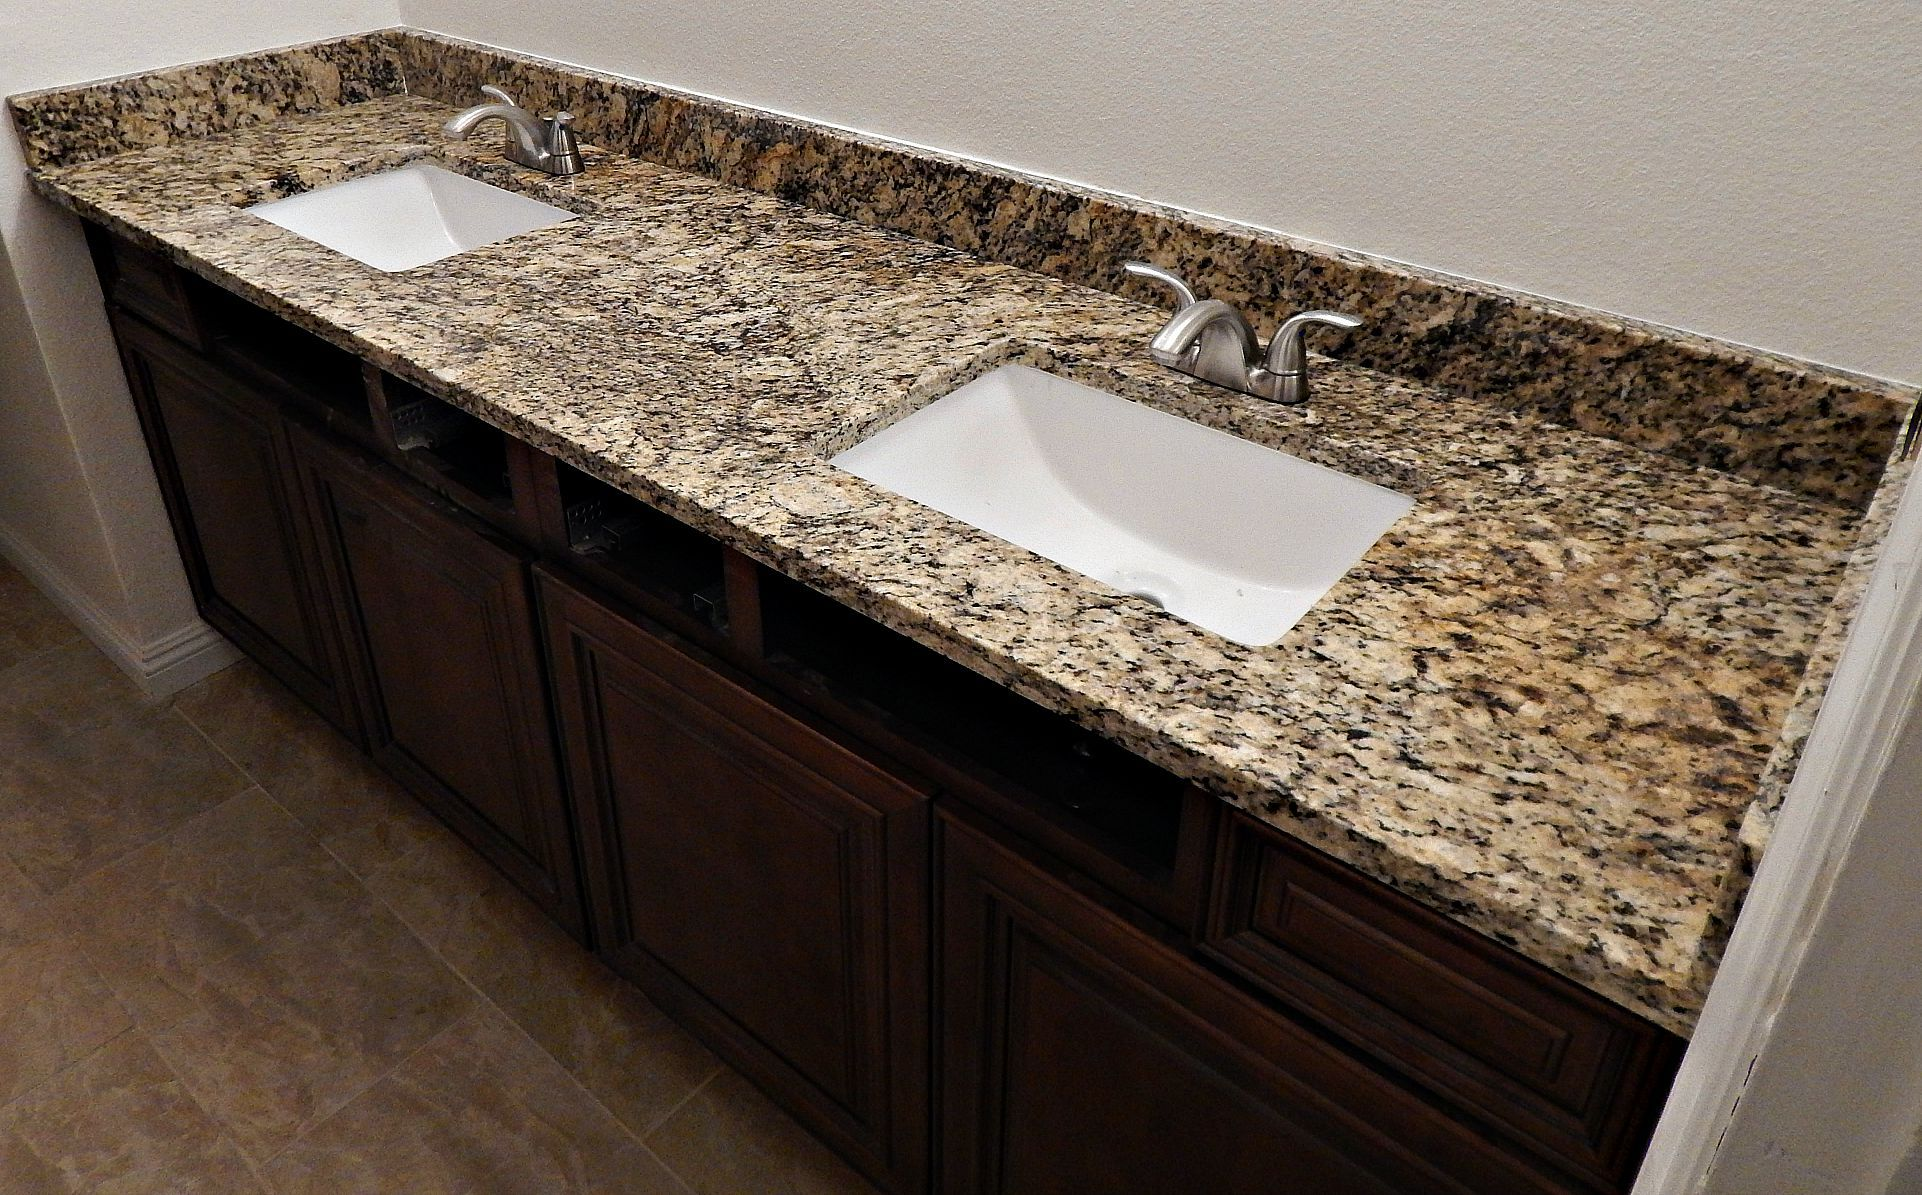 Bathroom with granite countertops - St Cecelia Granite Countertop Remodel With Flat Polish Edge And White Rectangle Under Mount Sinks